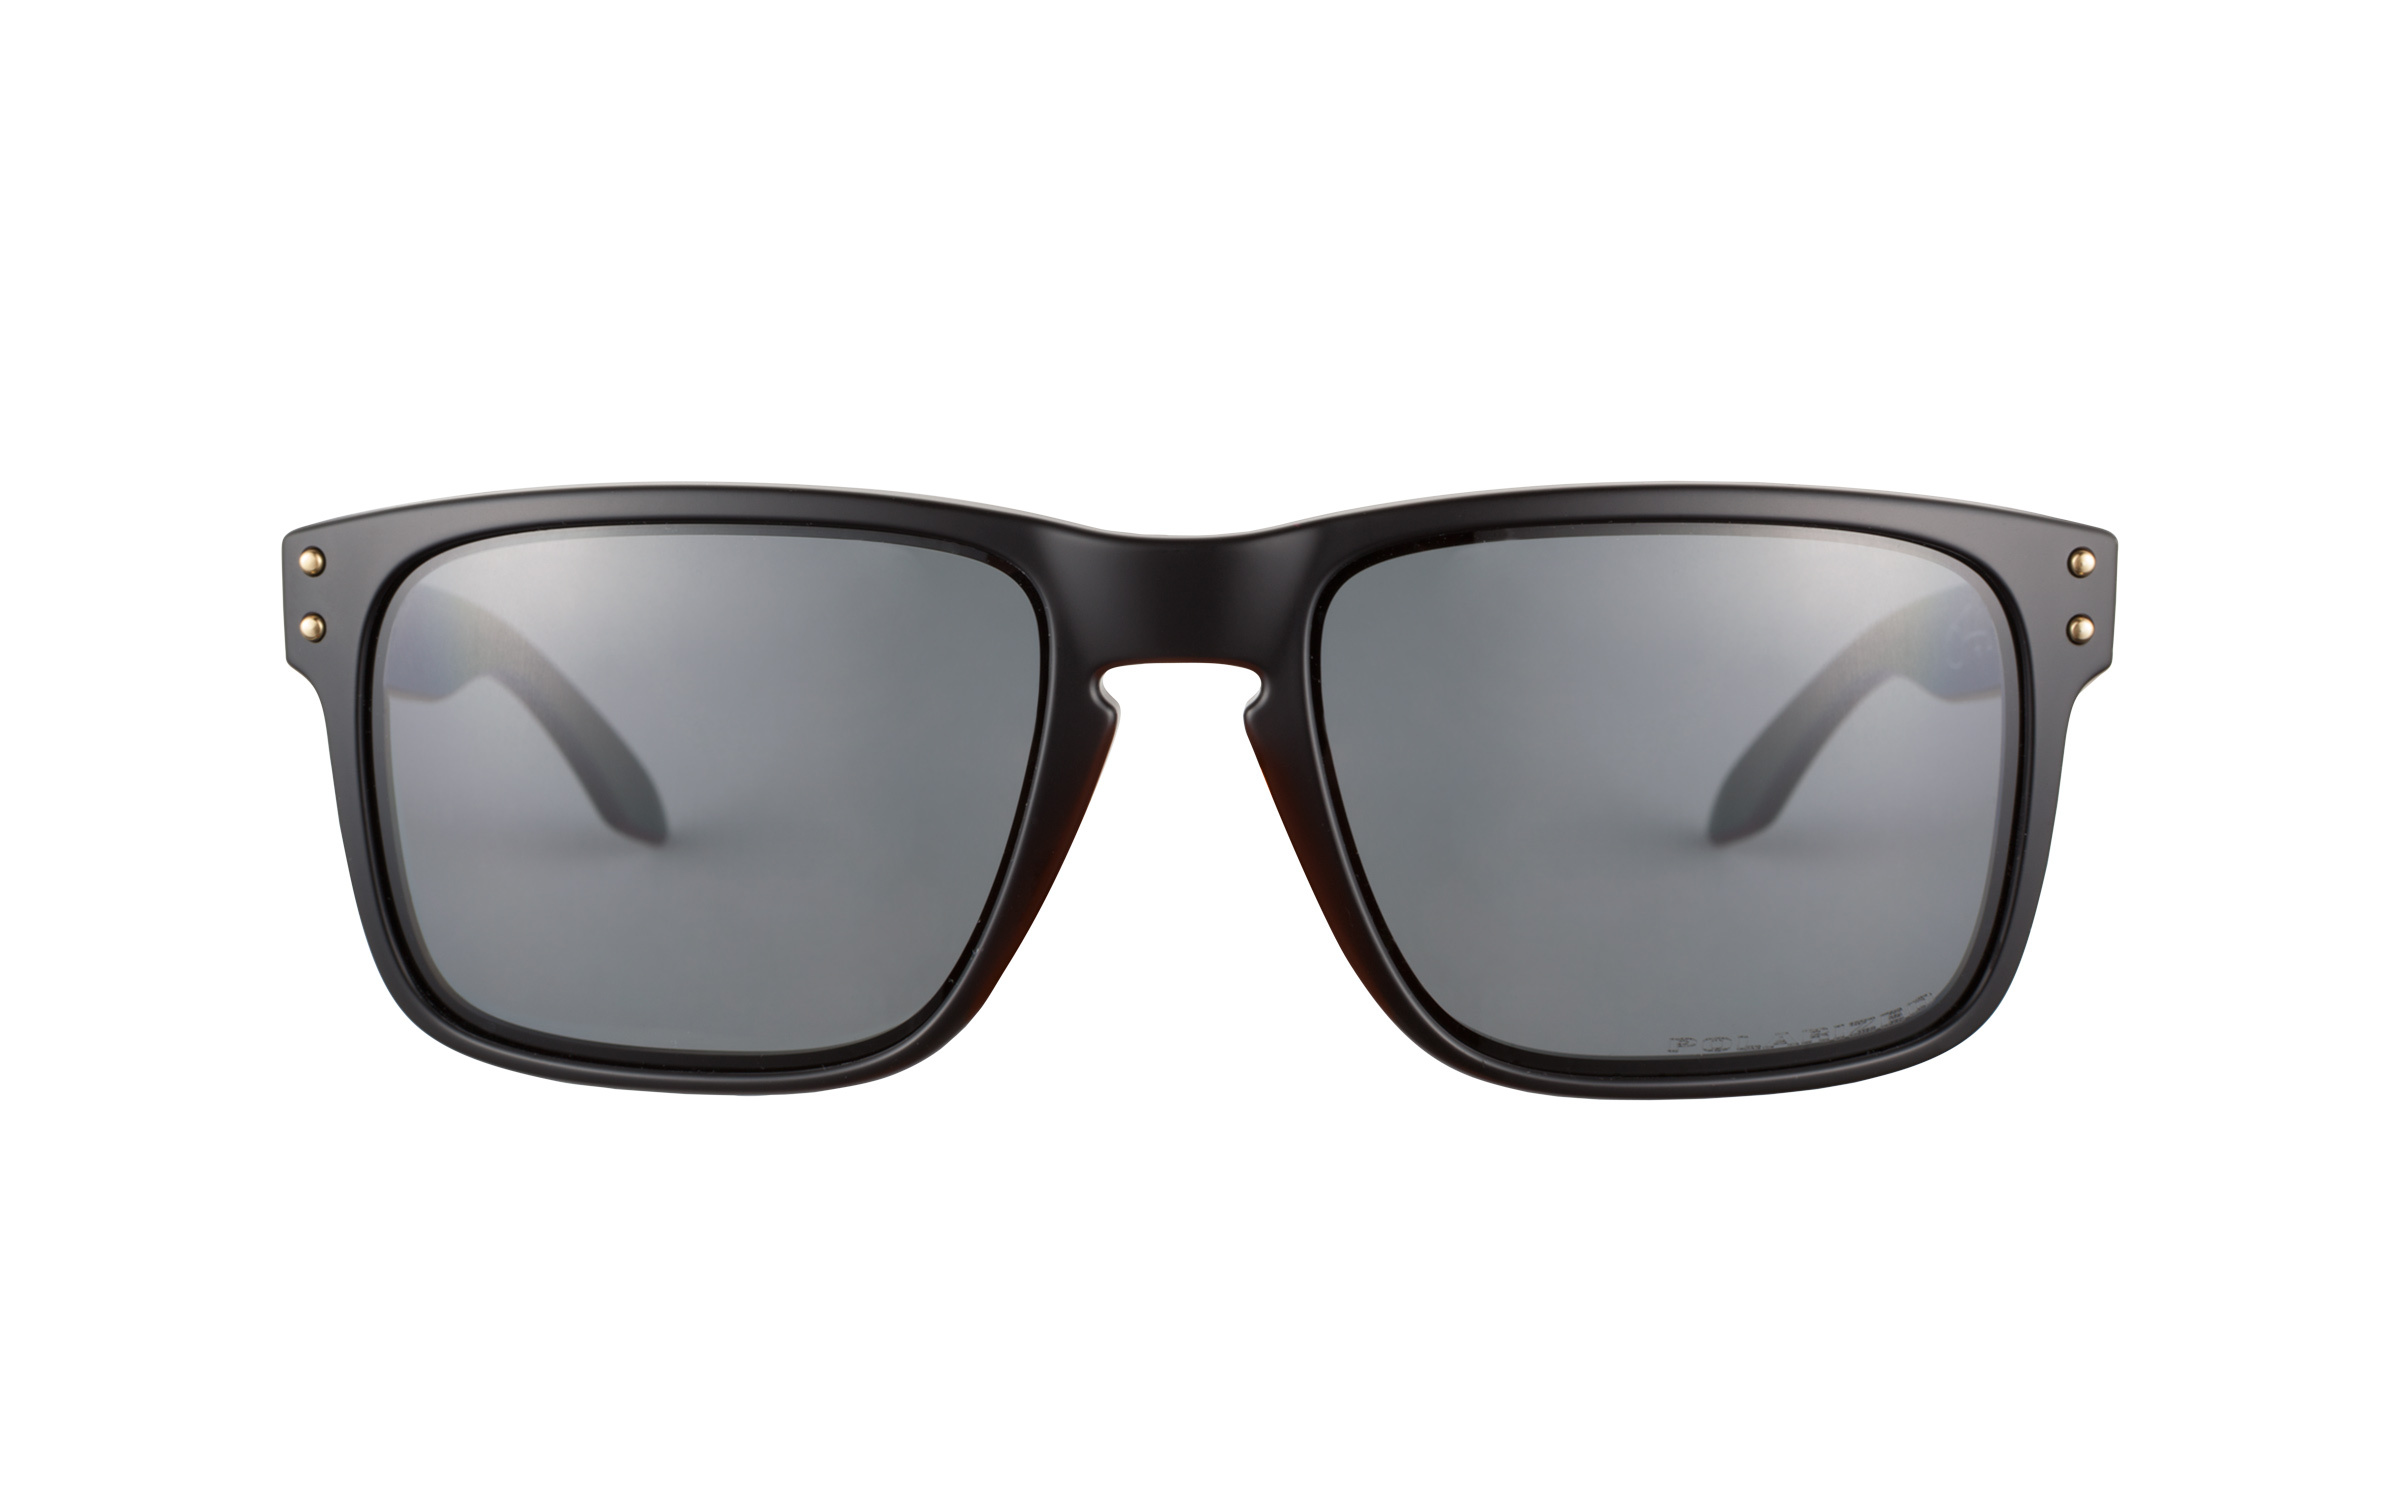 Oakley Holbrook 9102 17 Shawn White Matte Black Sunglasses